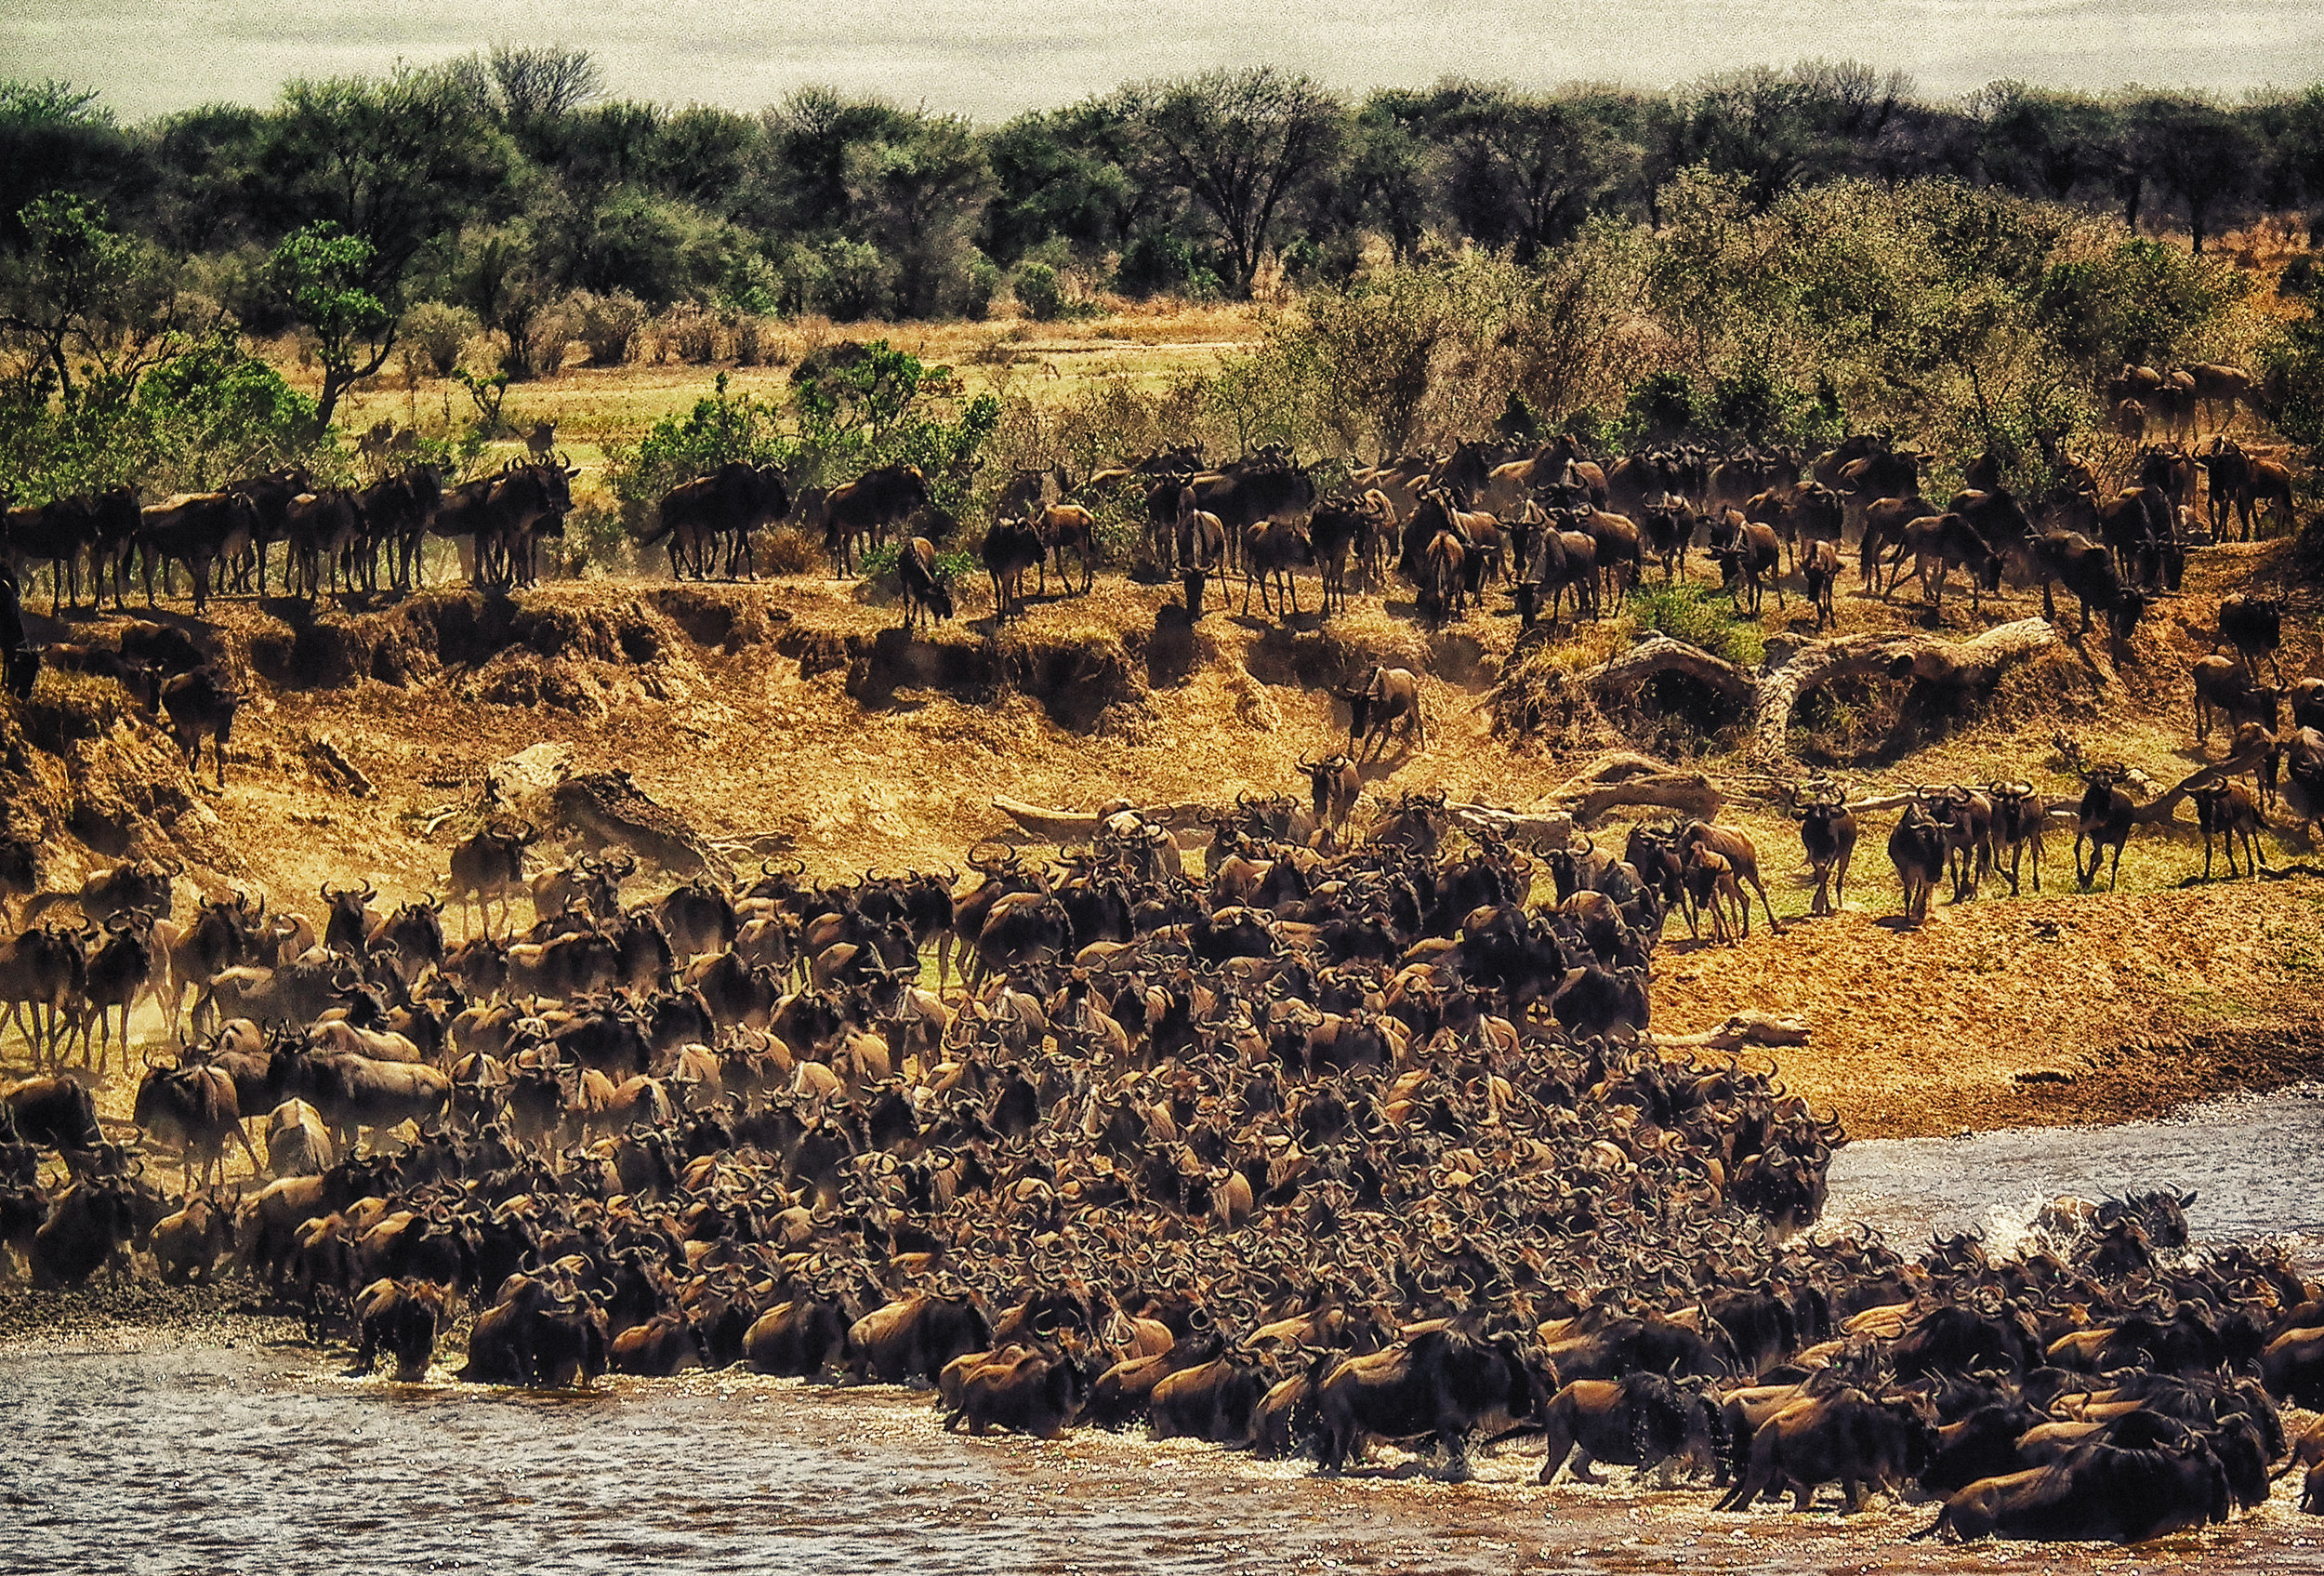 Chasing the Great Migration - No amount of research will prepare you for witnessing this awe-inspiring natural phenomenon. The key players in this 1,200-mile odyssey are the wildebeest – 1.5 million of them – accompanied by 200,000 zebras. Every year is an endless journey, chasing the rains in a race for life. Watch thousands of wildebeests migrate across wild plains, witness lion hunt and kill prey, enjoy amazing scenery, and prepare yourself for a safari experience like no other.